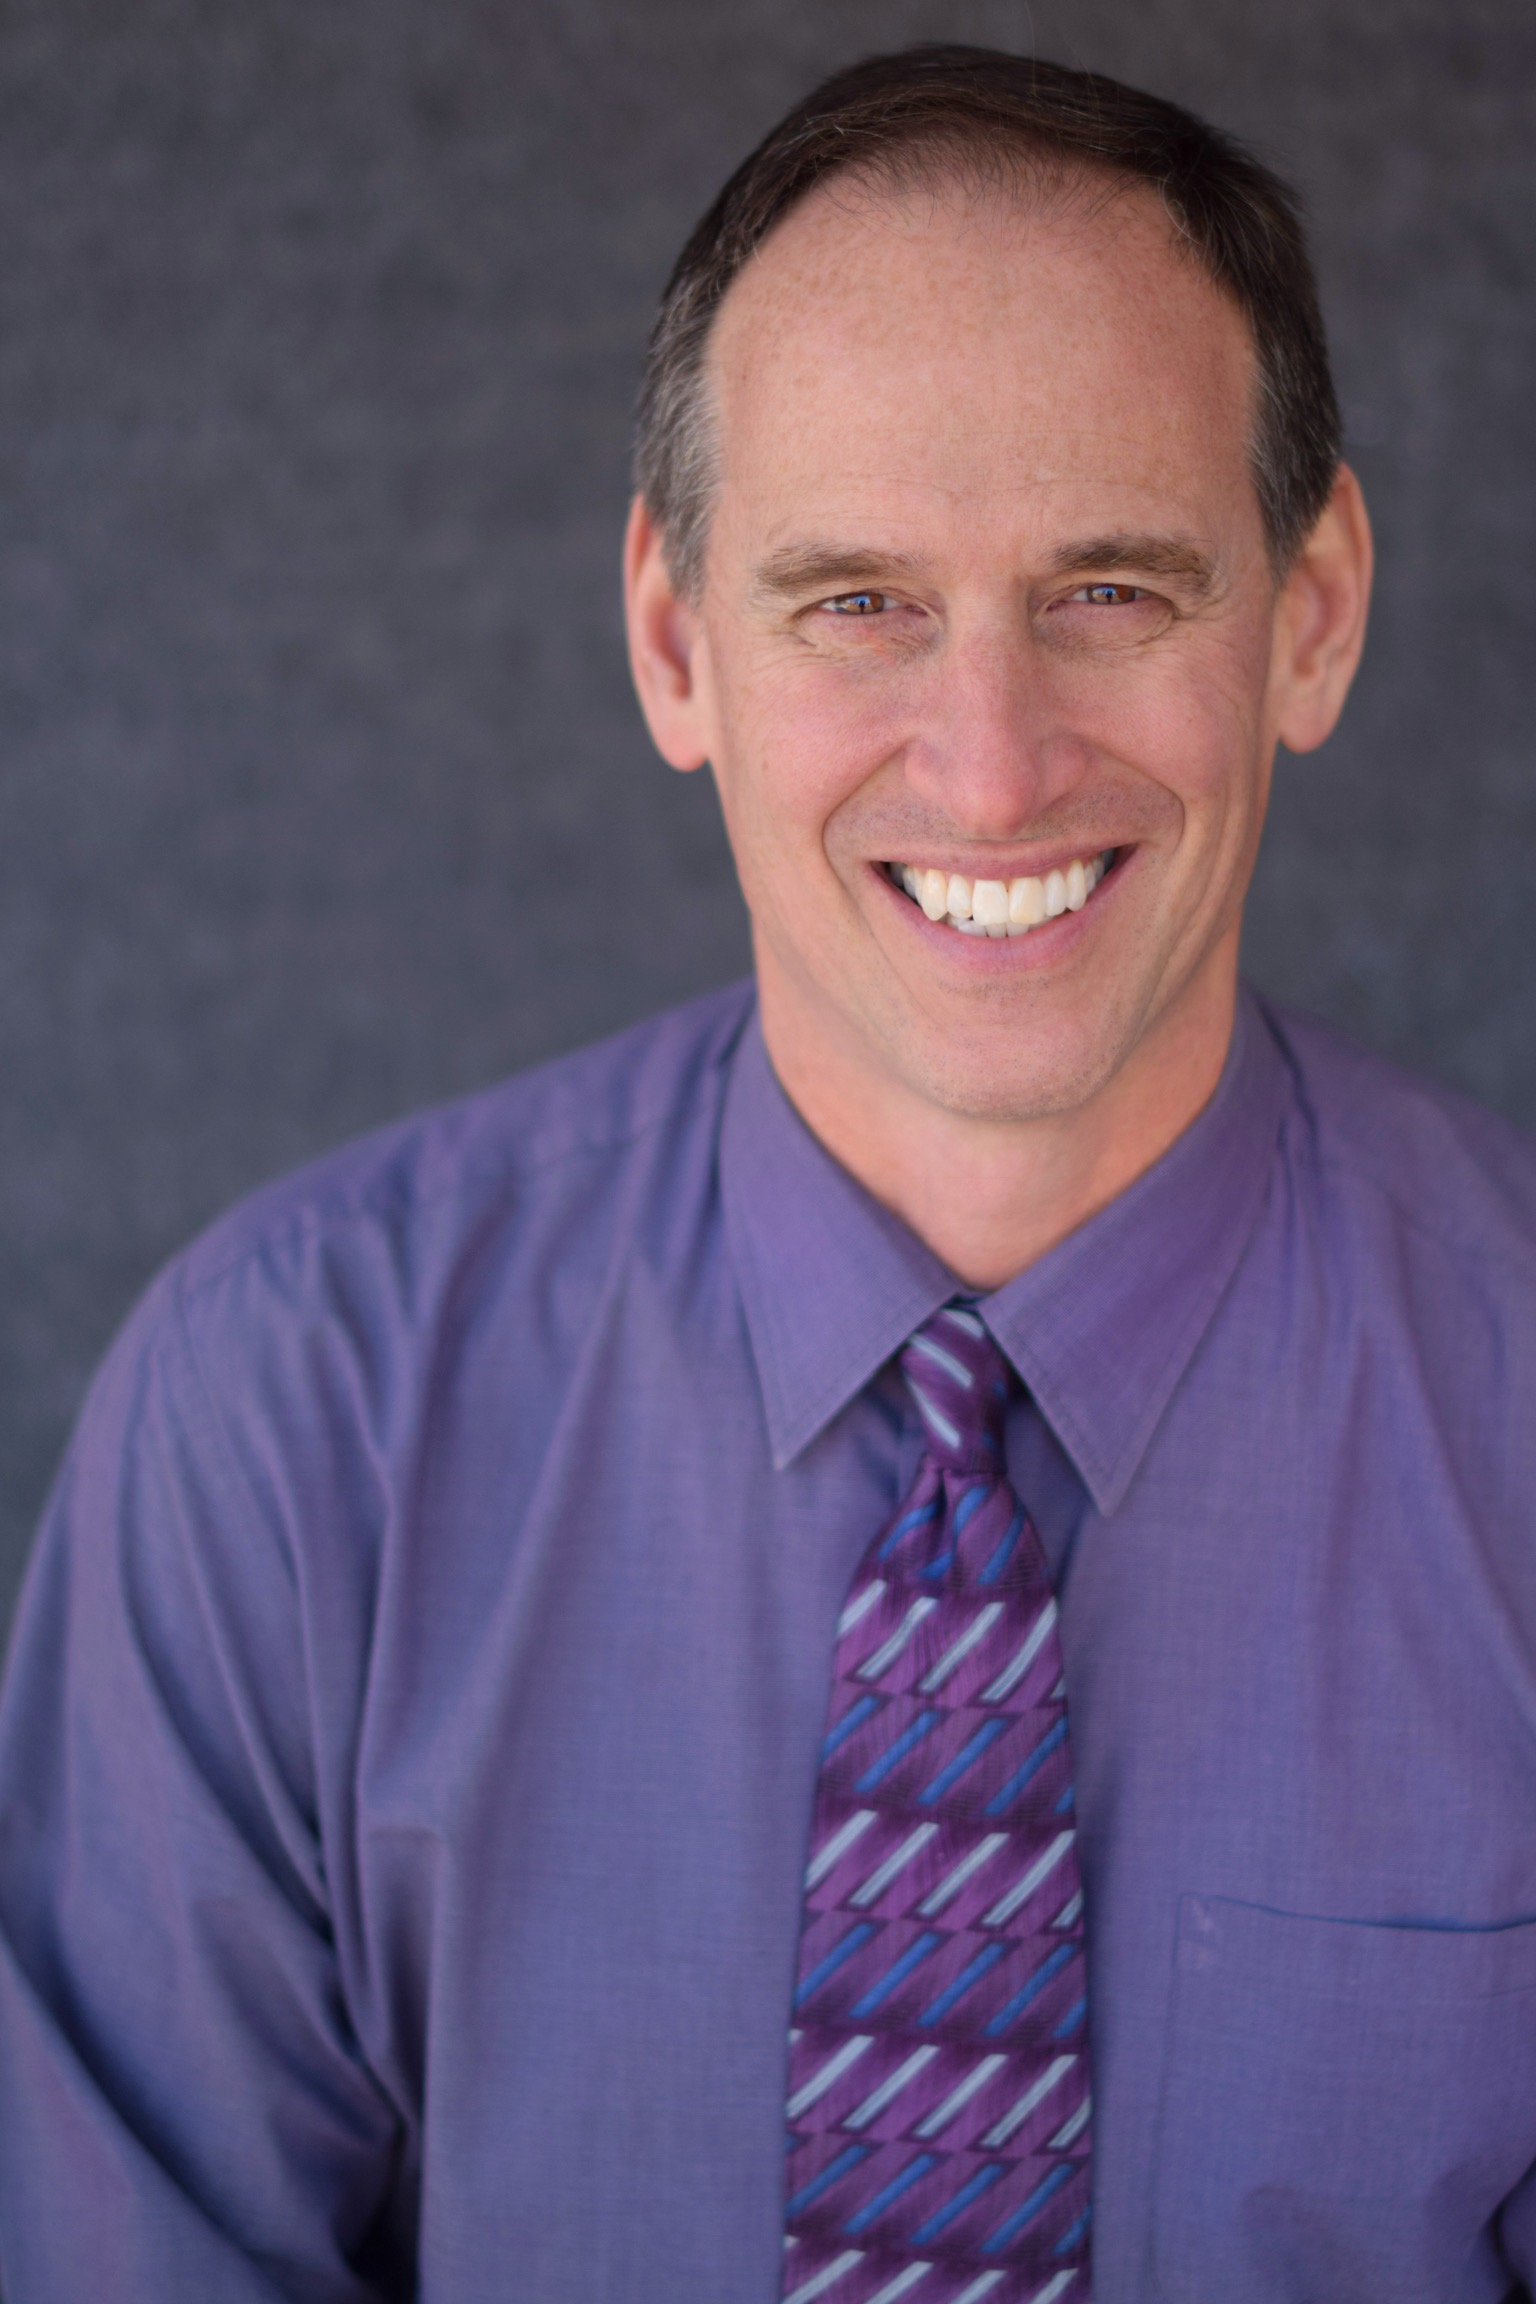 Dr Becker, Eau Claire and Chippewa Falls Chiropractor